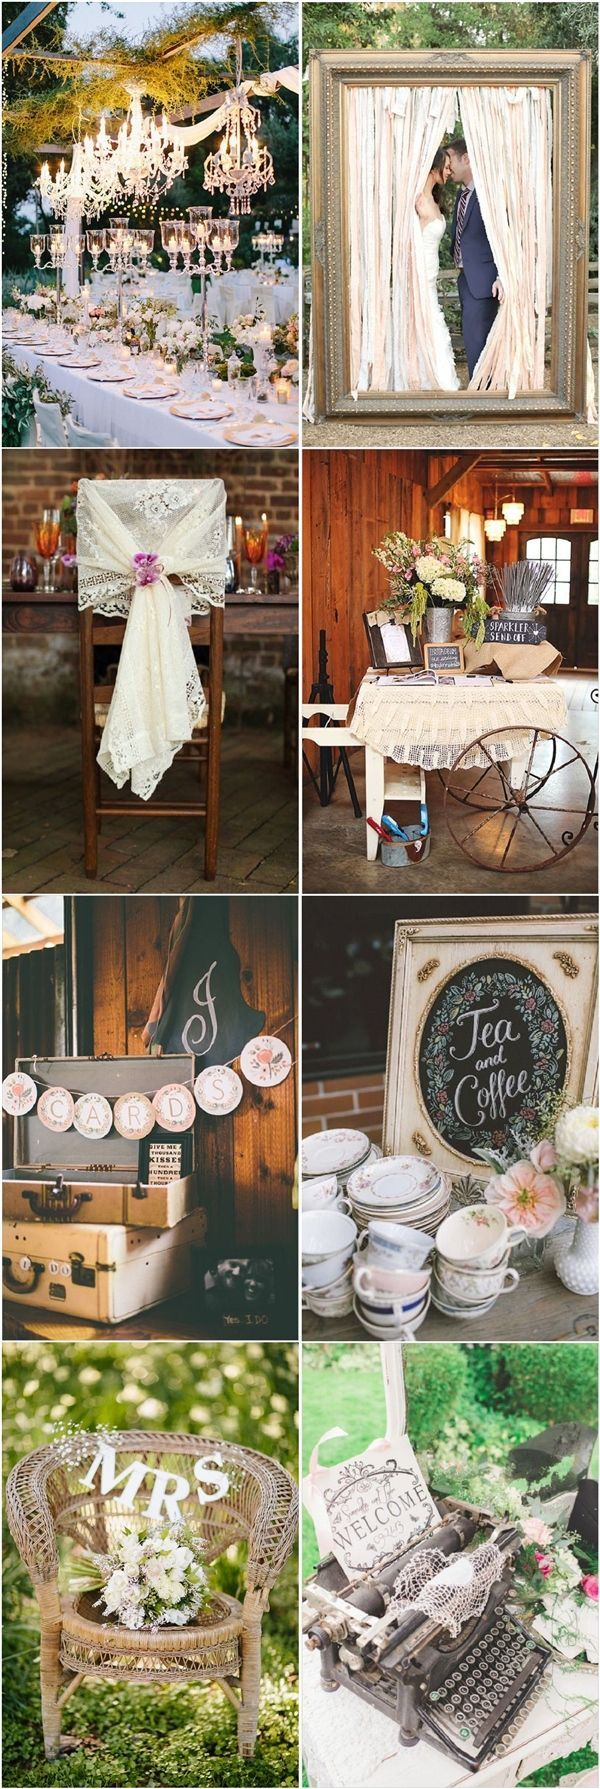 best thrifted wedding images by thrift town on pinterest